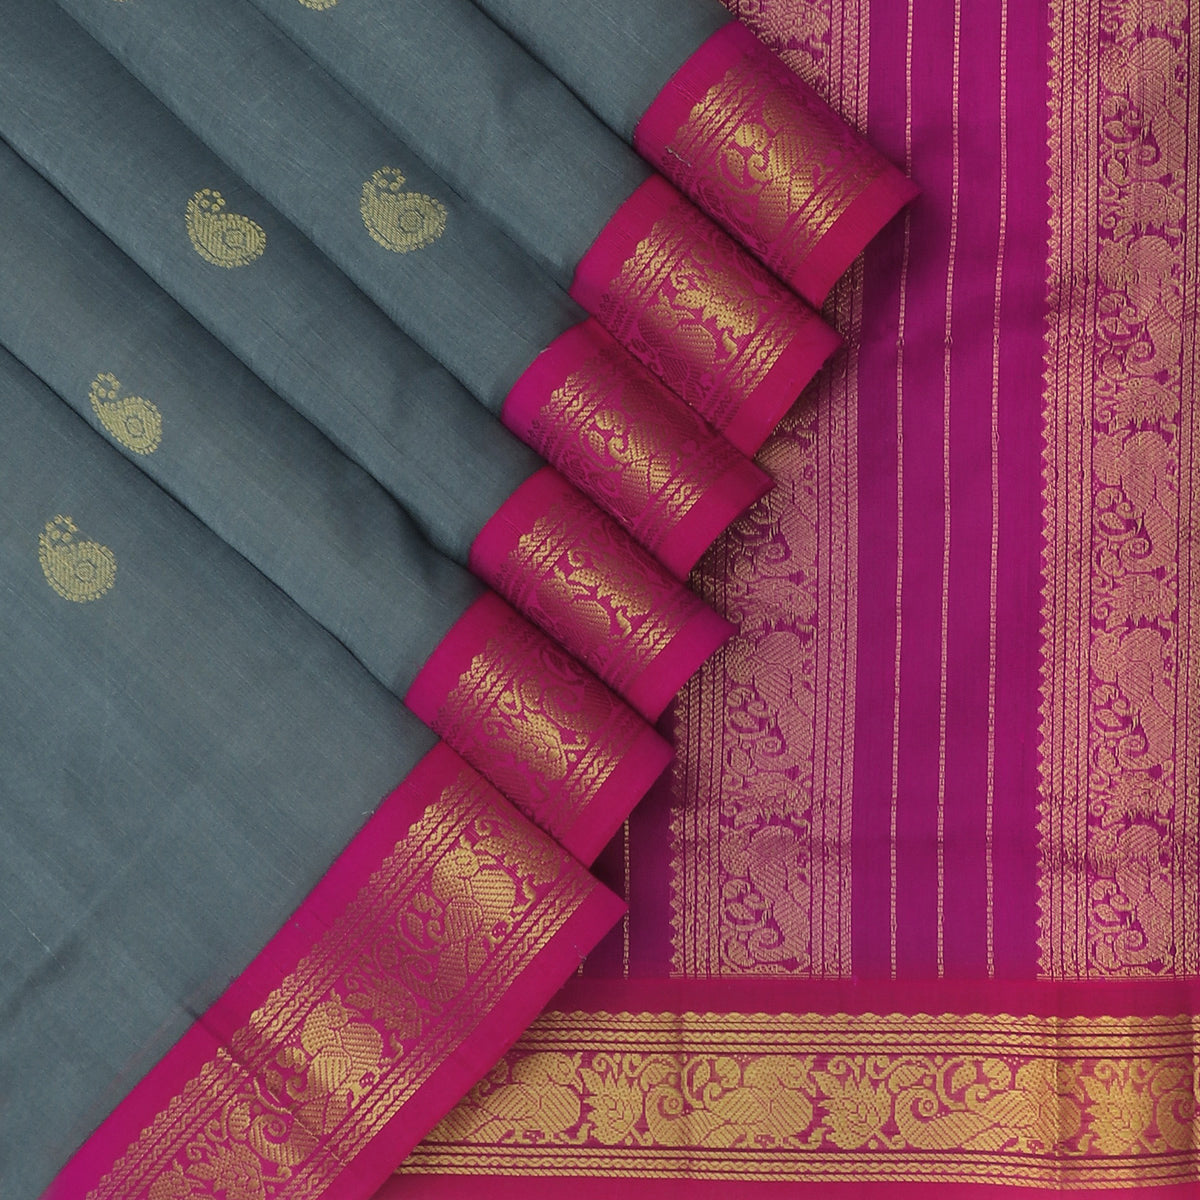 Silk Cotton Saree Grey with Buttas and Pink with Peacock Zari Border Korvai